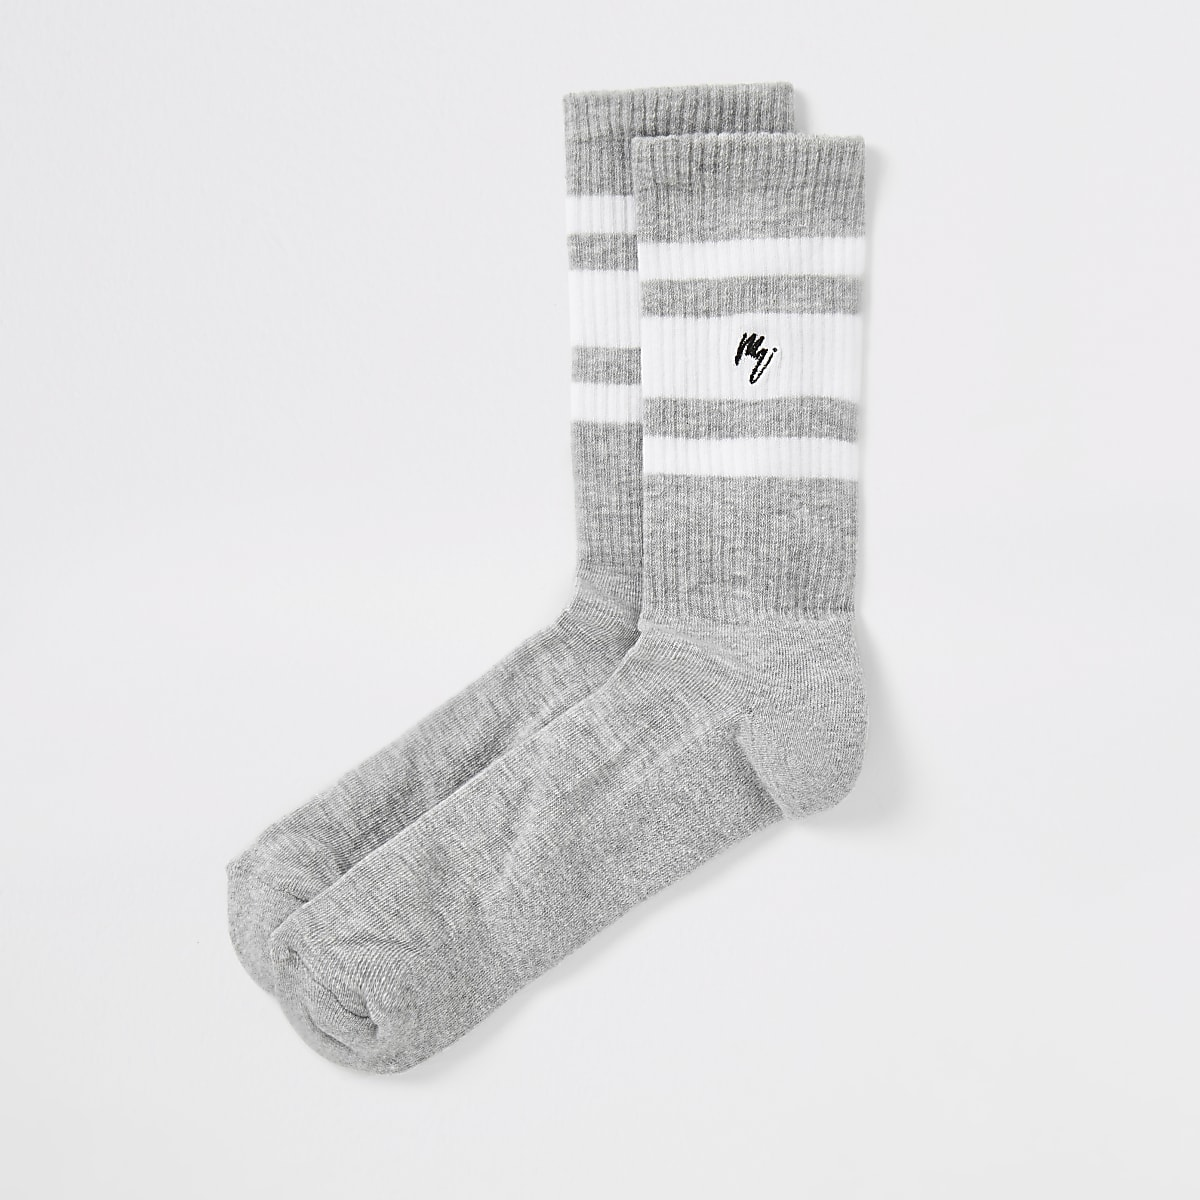 Grey Maison Riviera stripe socks